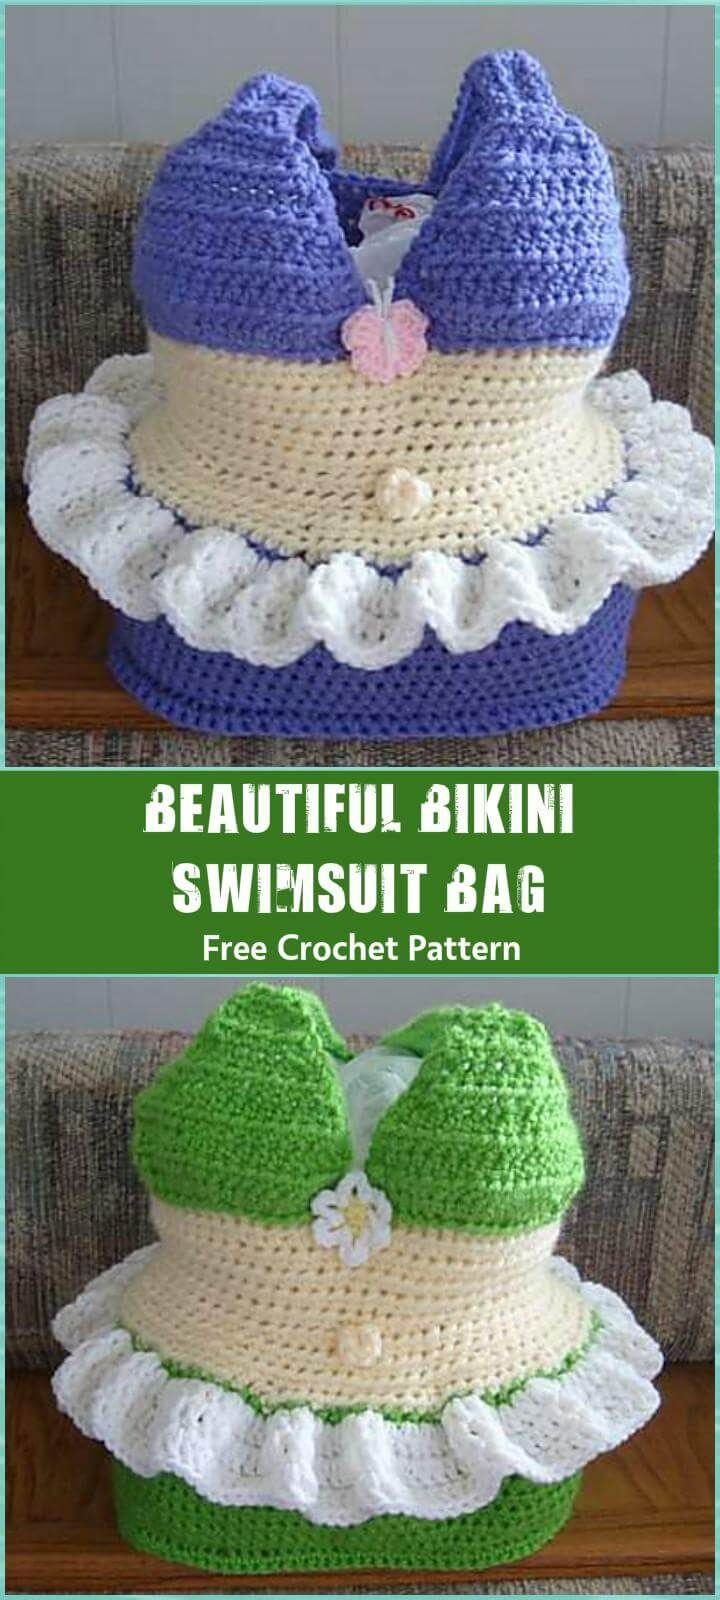 110+ Free Crochet Patterns for Summer and Spring | Pinterest